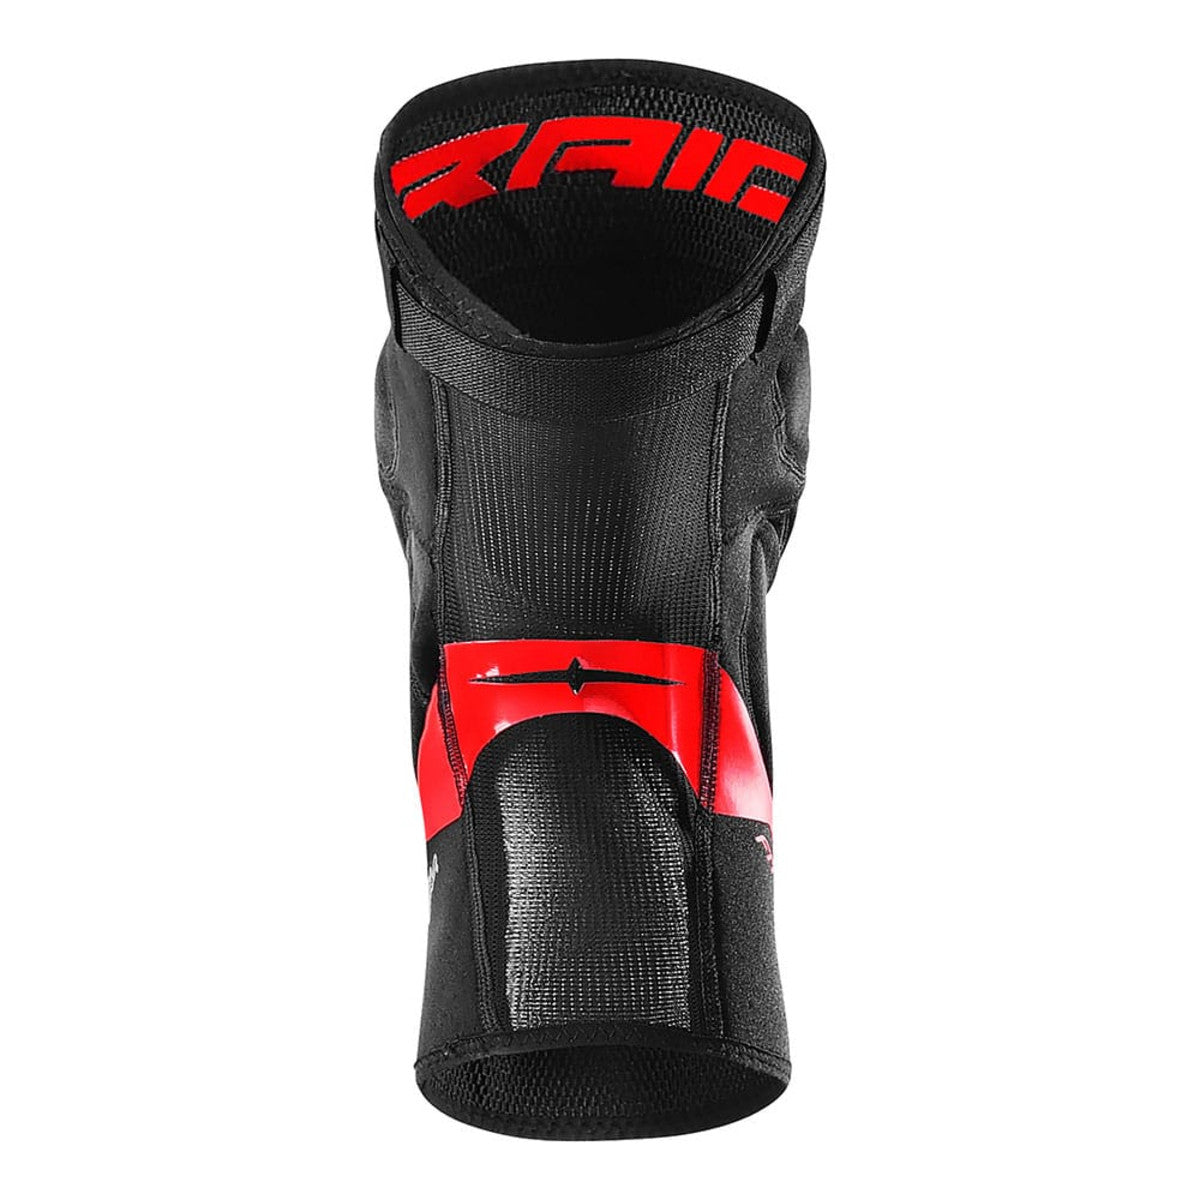 Troy Lee Designs Mountain Bike Knee Pads RAID KNEE GUARD; BLACK XS/SM-Misc-The Gear Attic